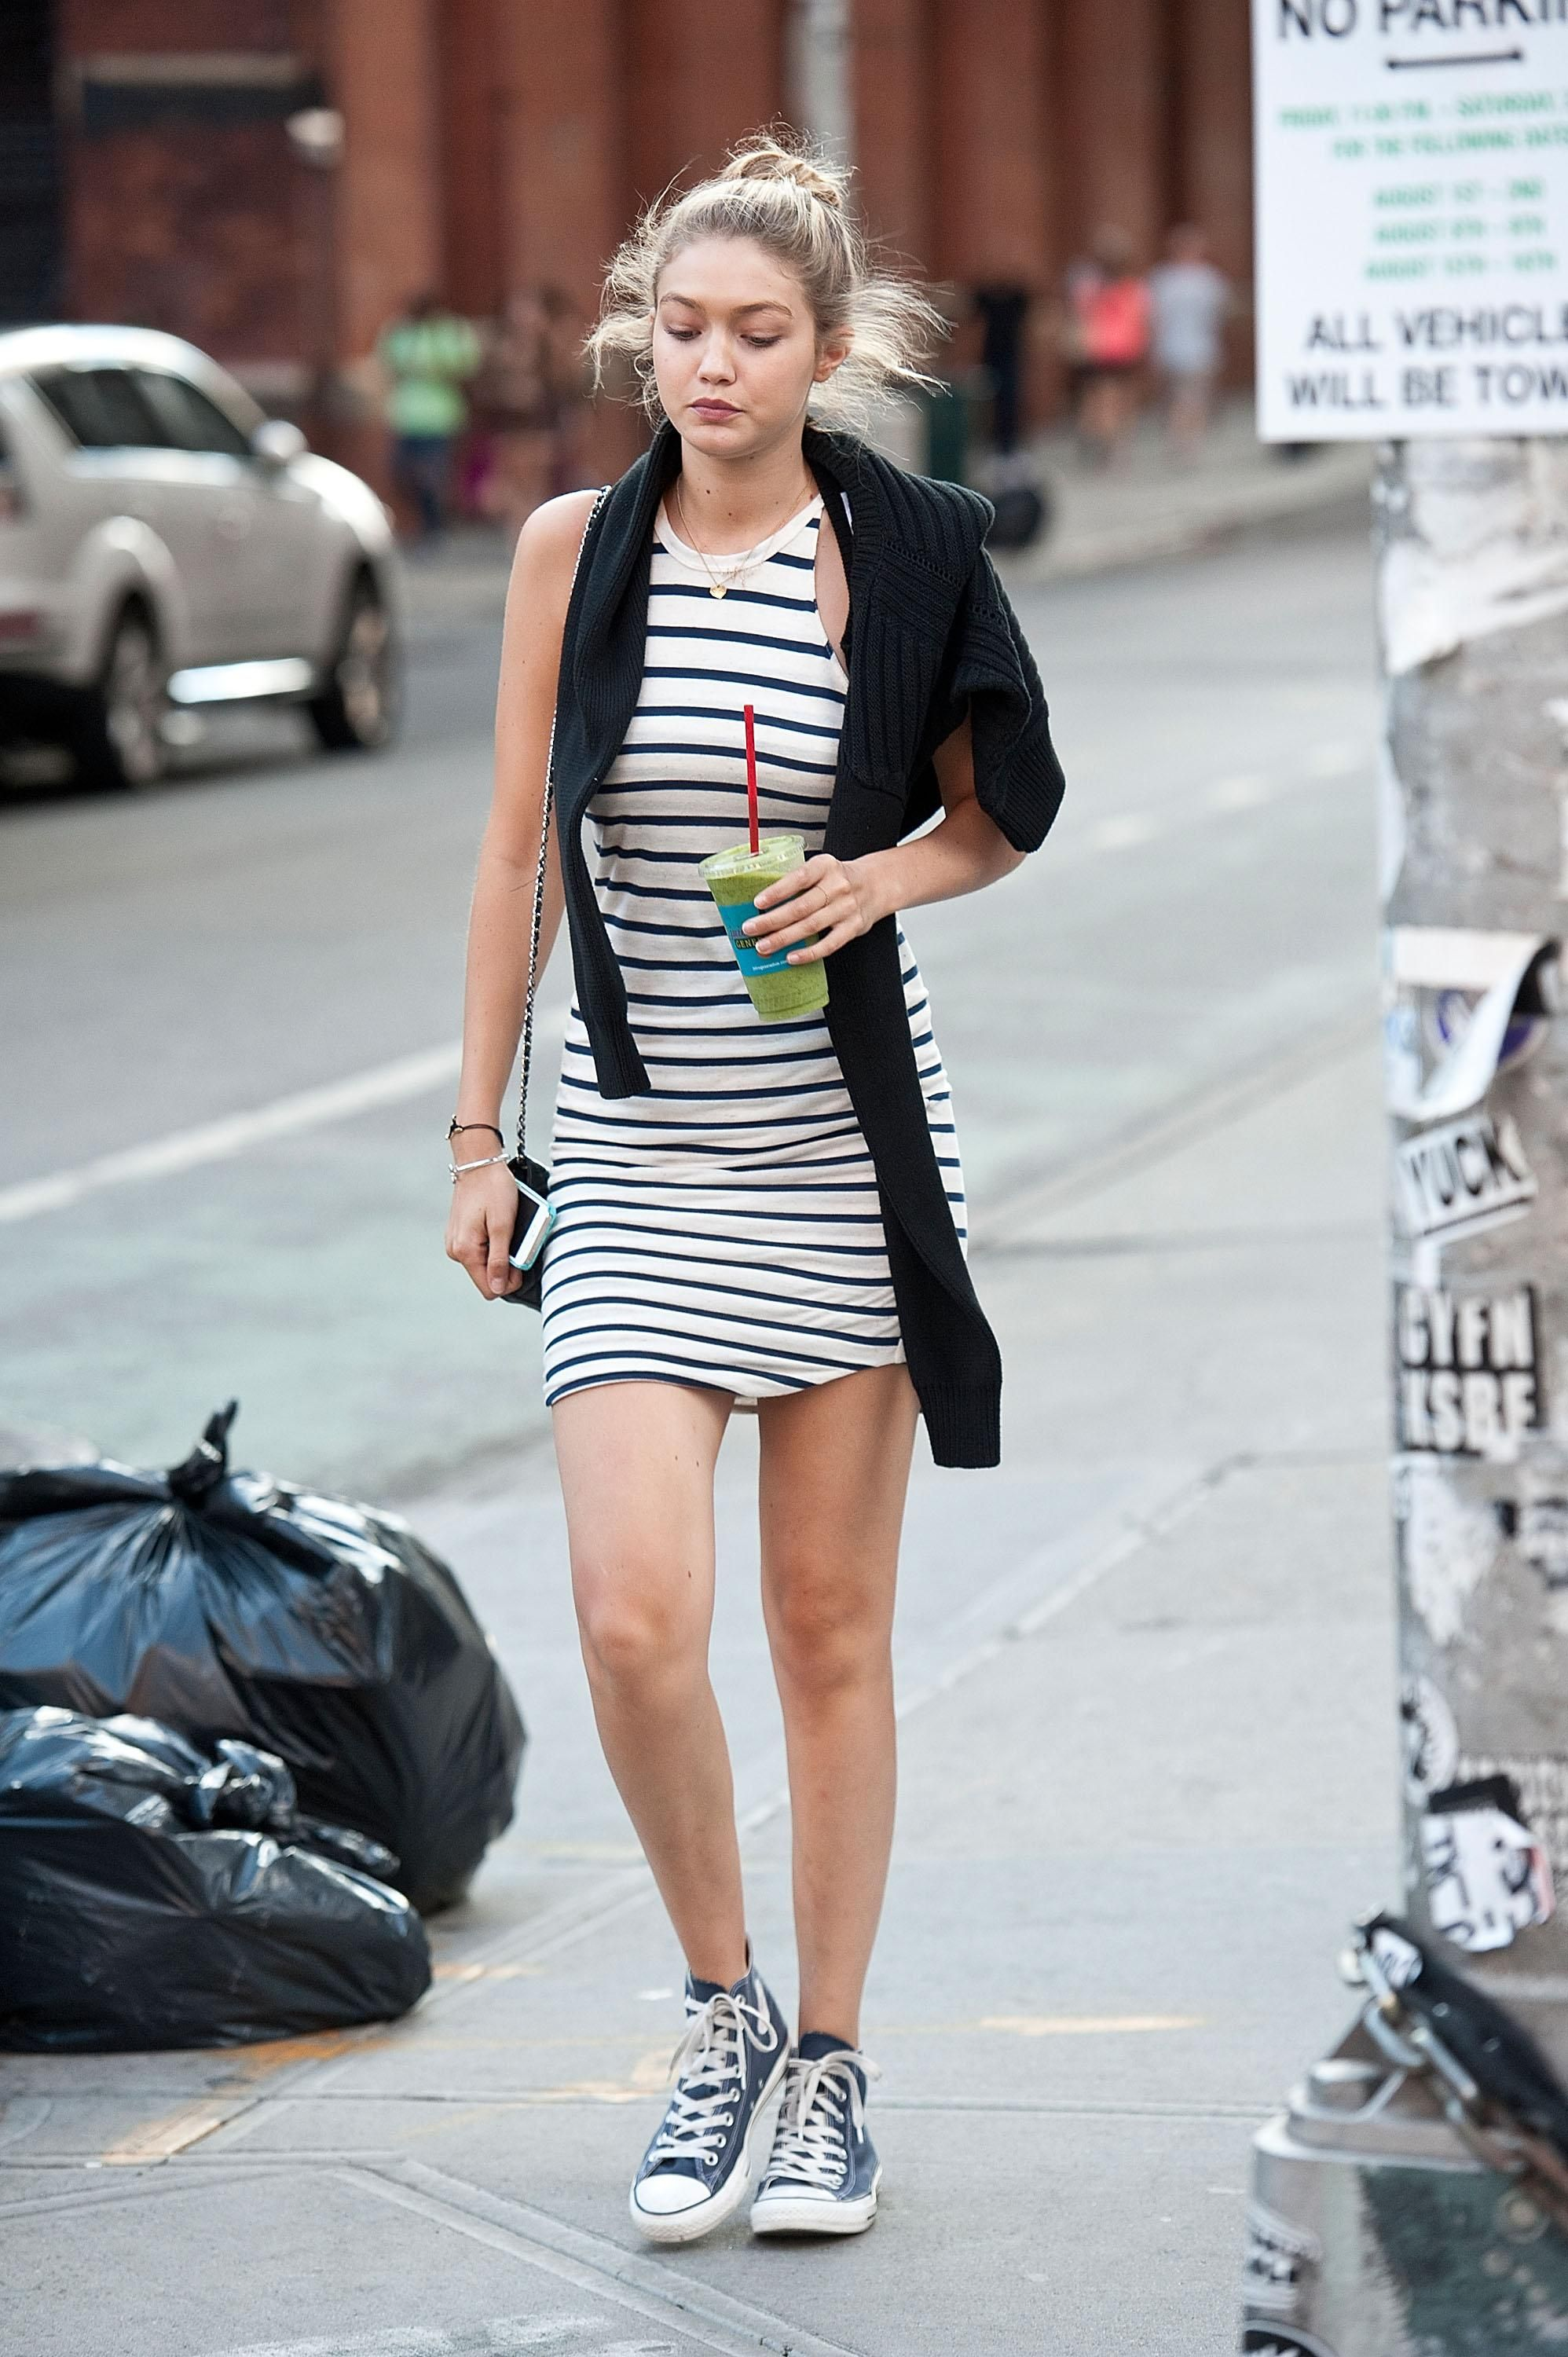 Gigi Hadid in stripes and navy converse high tops Mode Femme Tendance, Robe  Marinière, ed0627fdc760